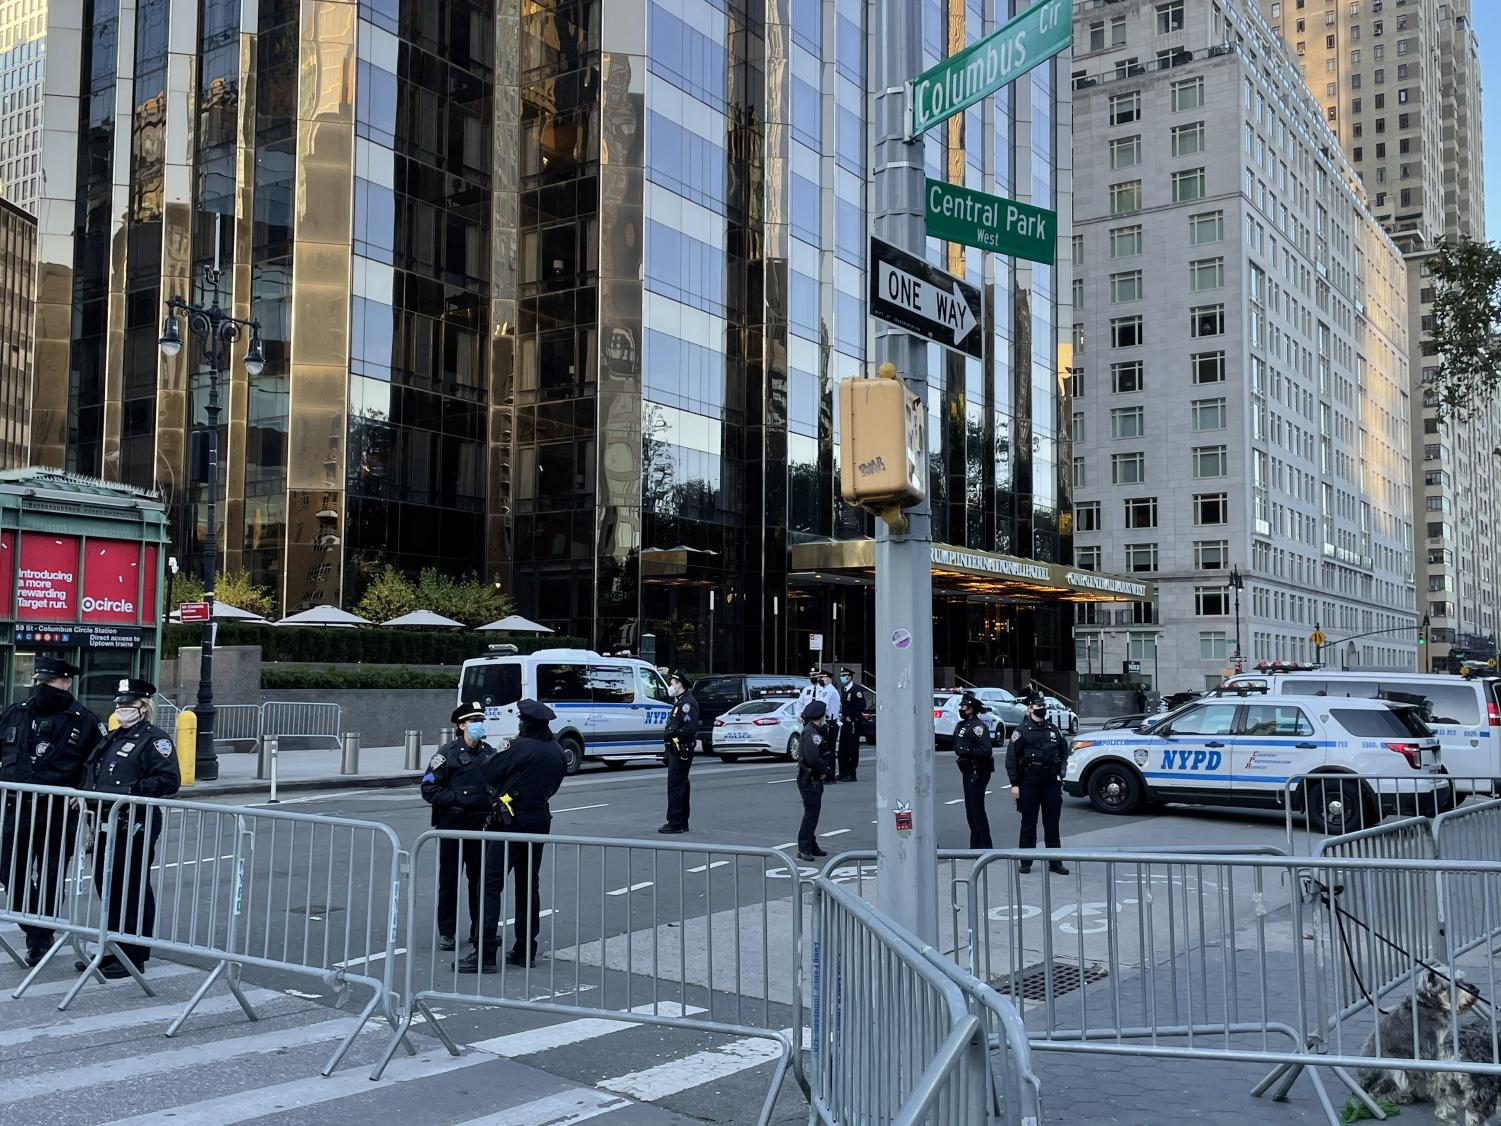 police officers stand in the street on Central Park West with a fence blocking traffic to the street and police cars lining the sides